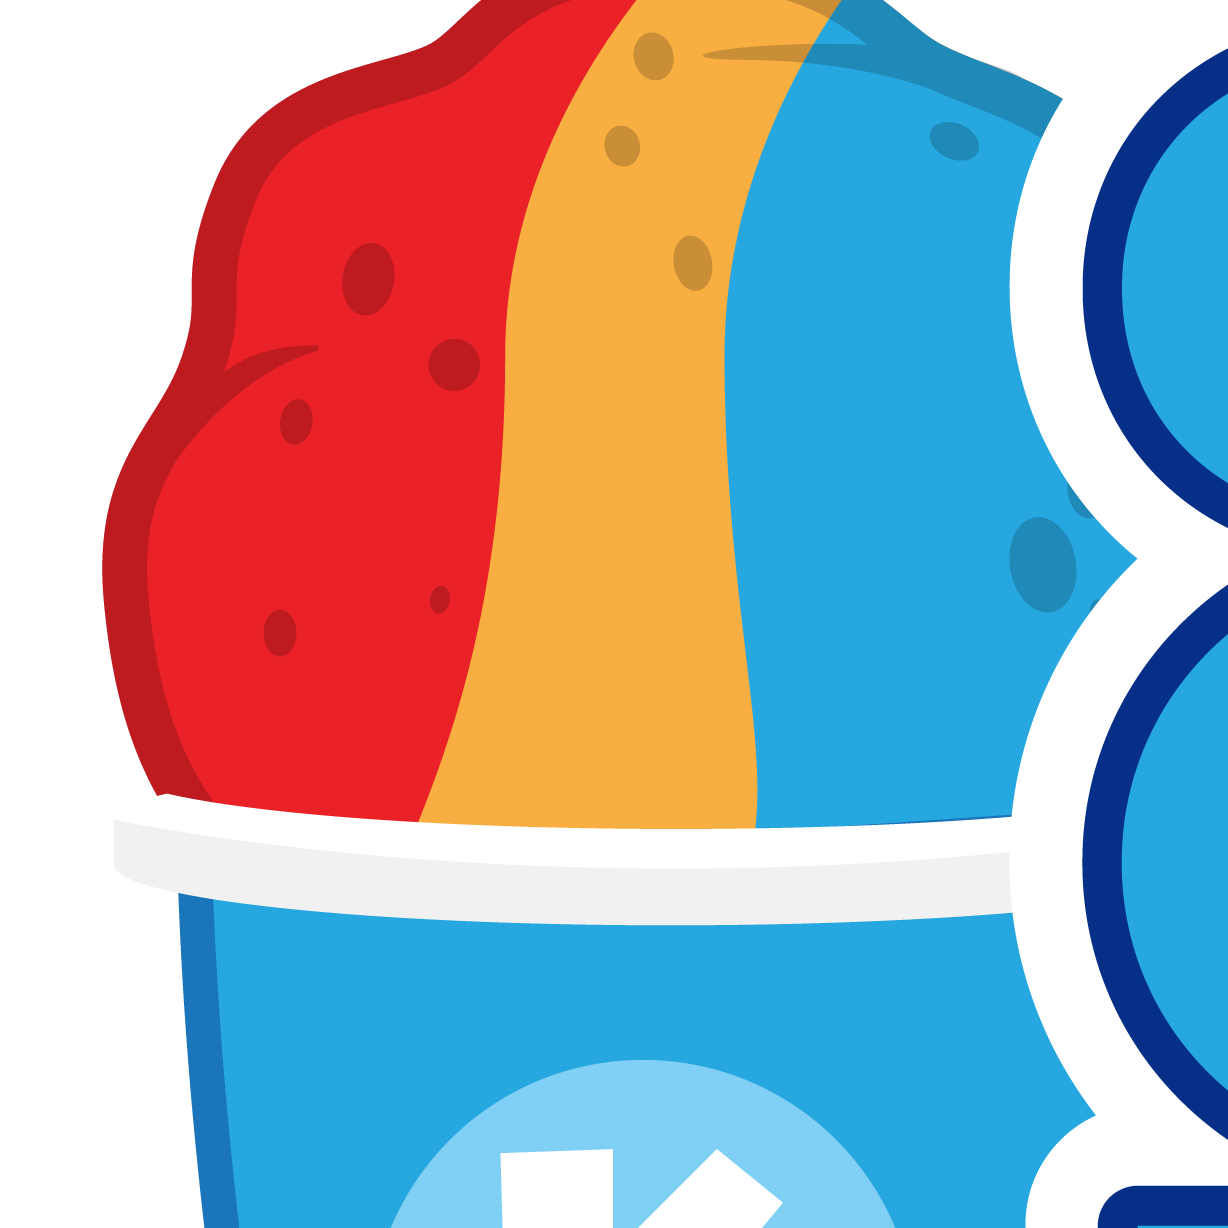 'Chill out' on Tax Day with a free Kona Ice treat